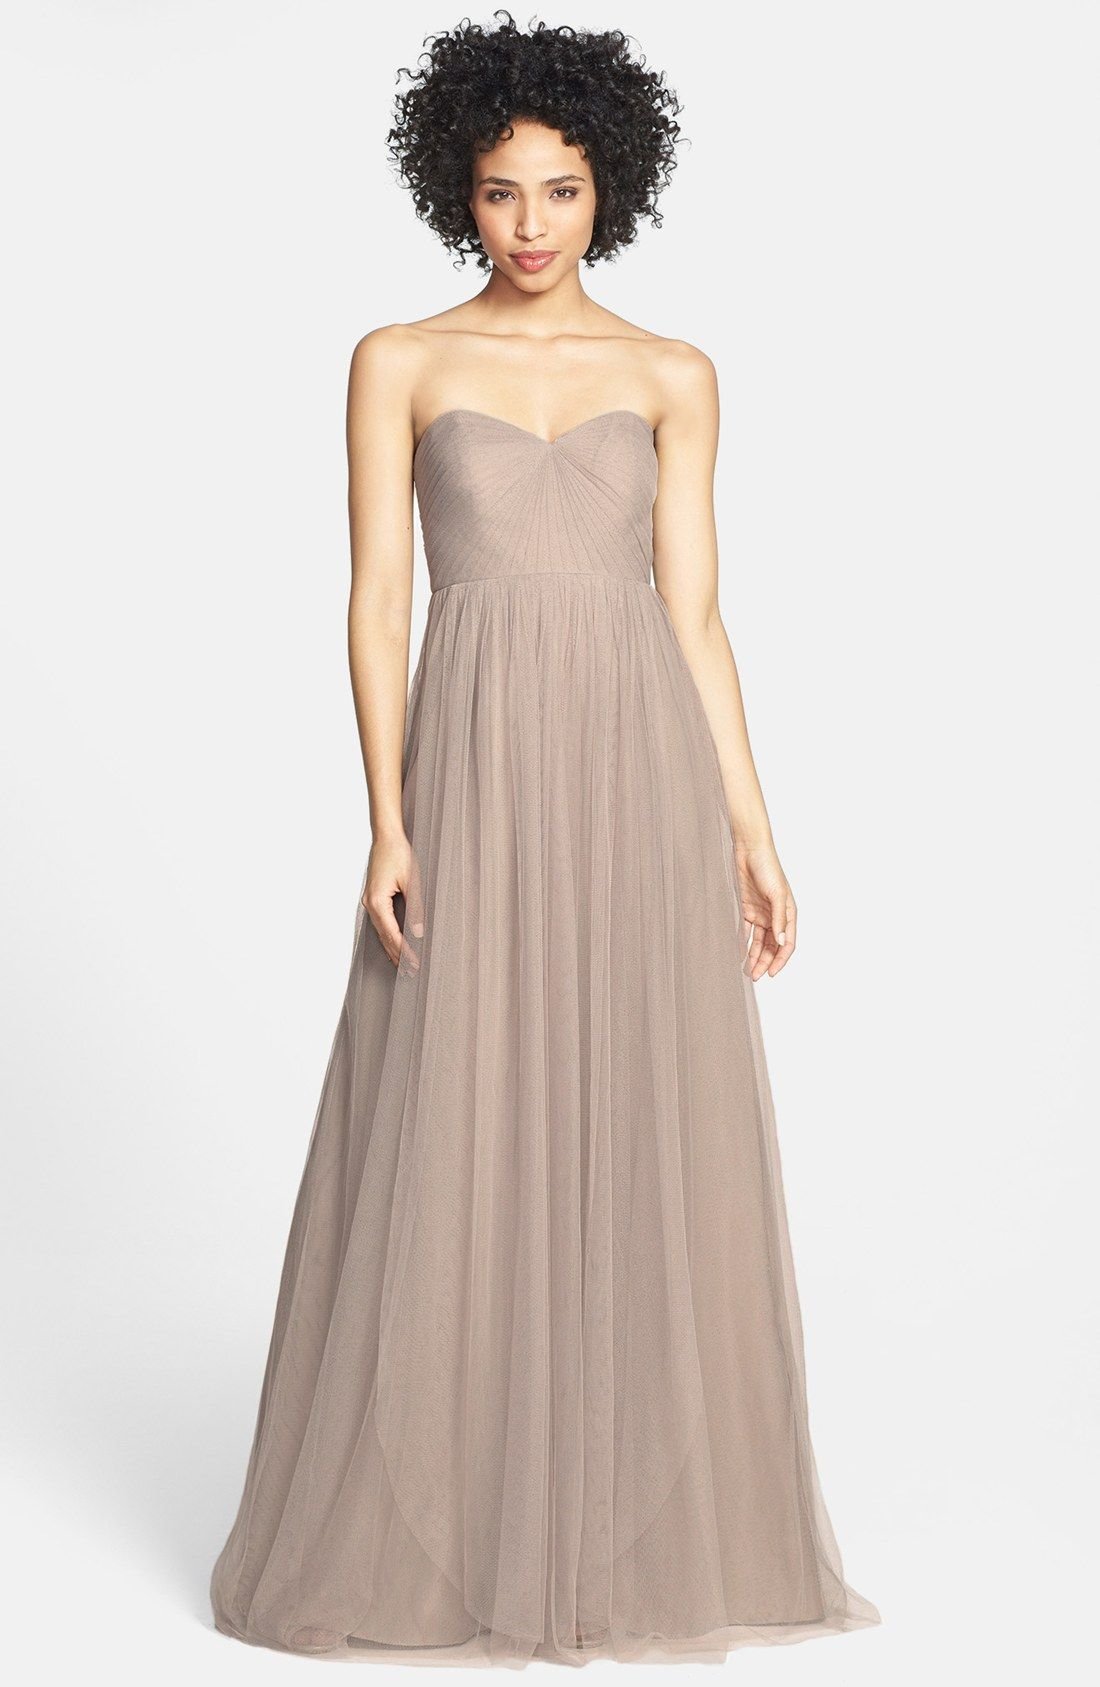 $260 Nordstrom | Jenny Yoo \'Annabelle\' Convertible Tulle Column ...